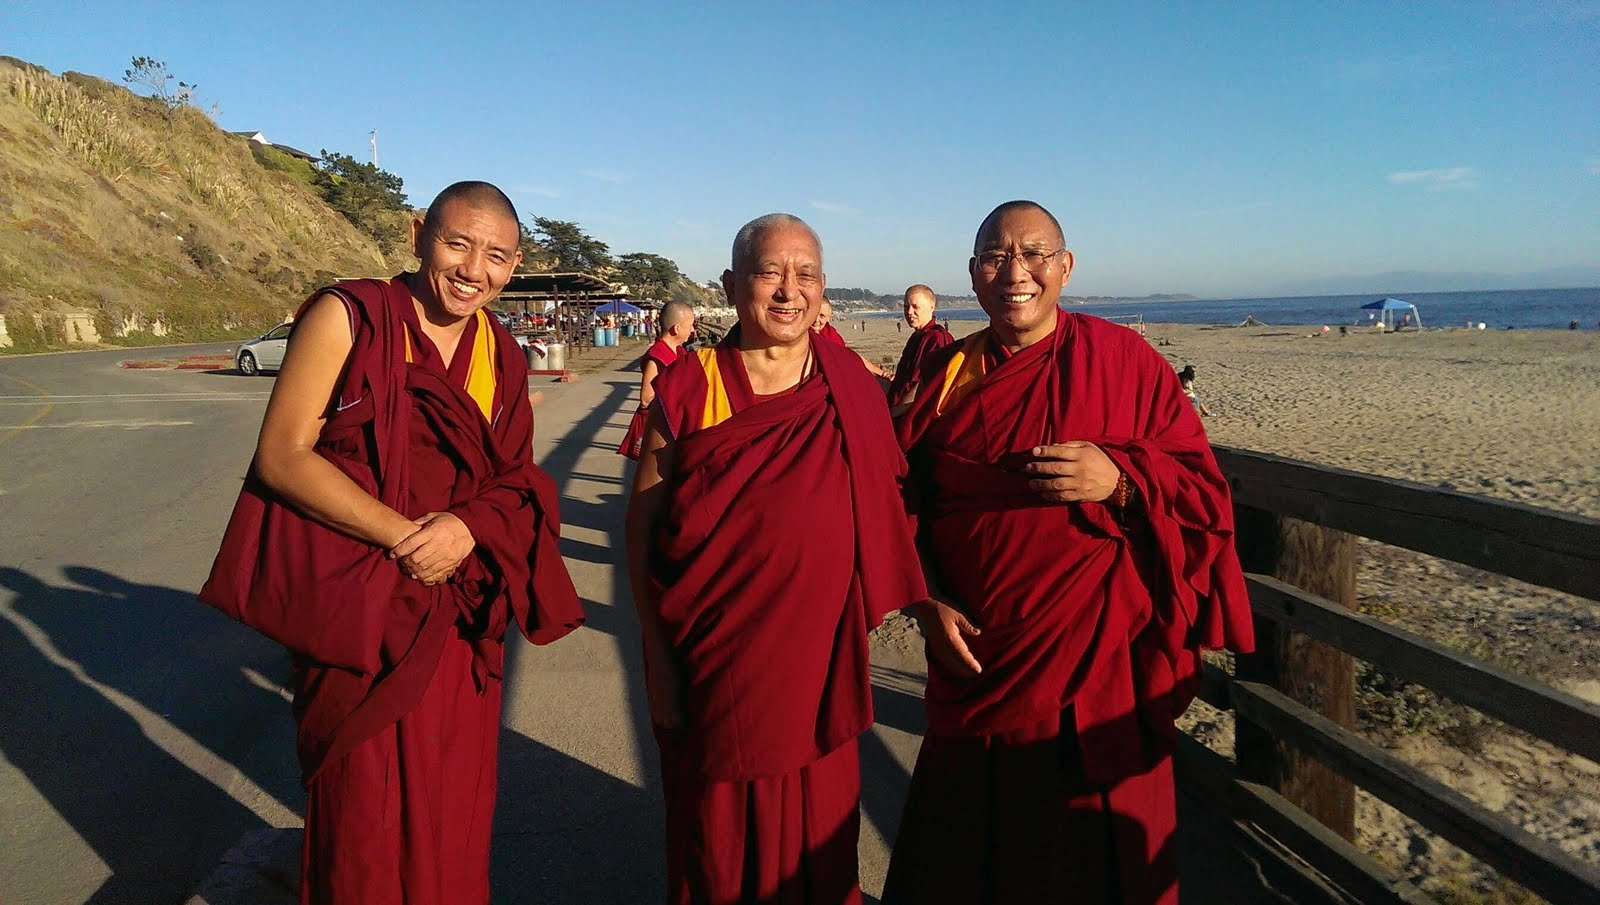 Tenzing Gyeltsen, Lama Zopa Rinpoche and Dagri Rinpoche going to the ocean to bless sentient beings, Aptos CA Oct 2013. Photo by Ven. Roger Kunsang